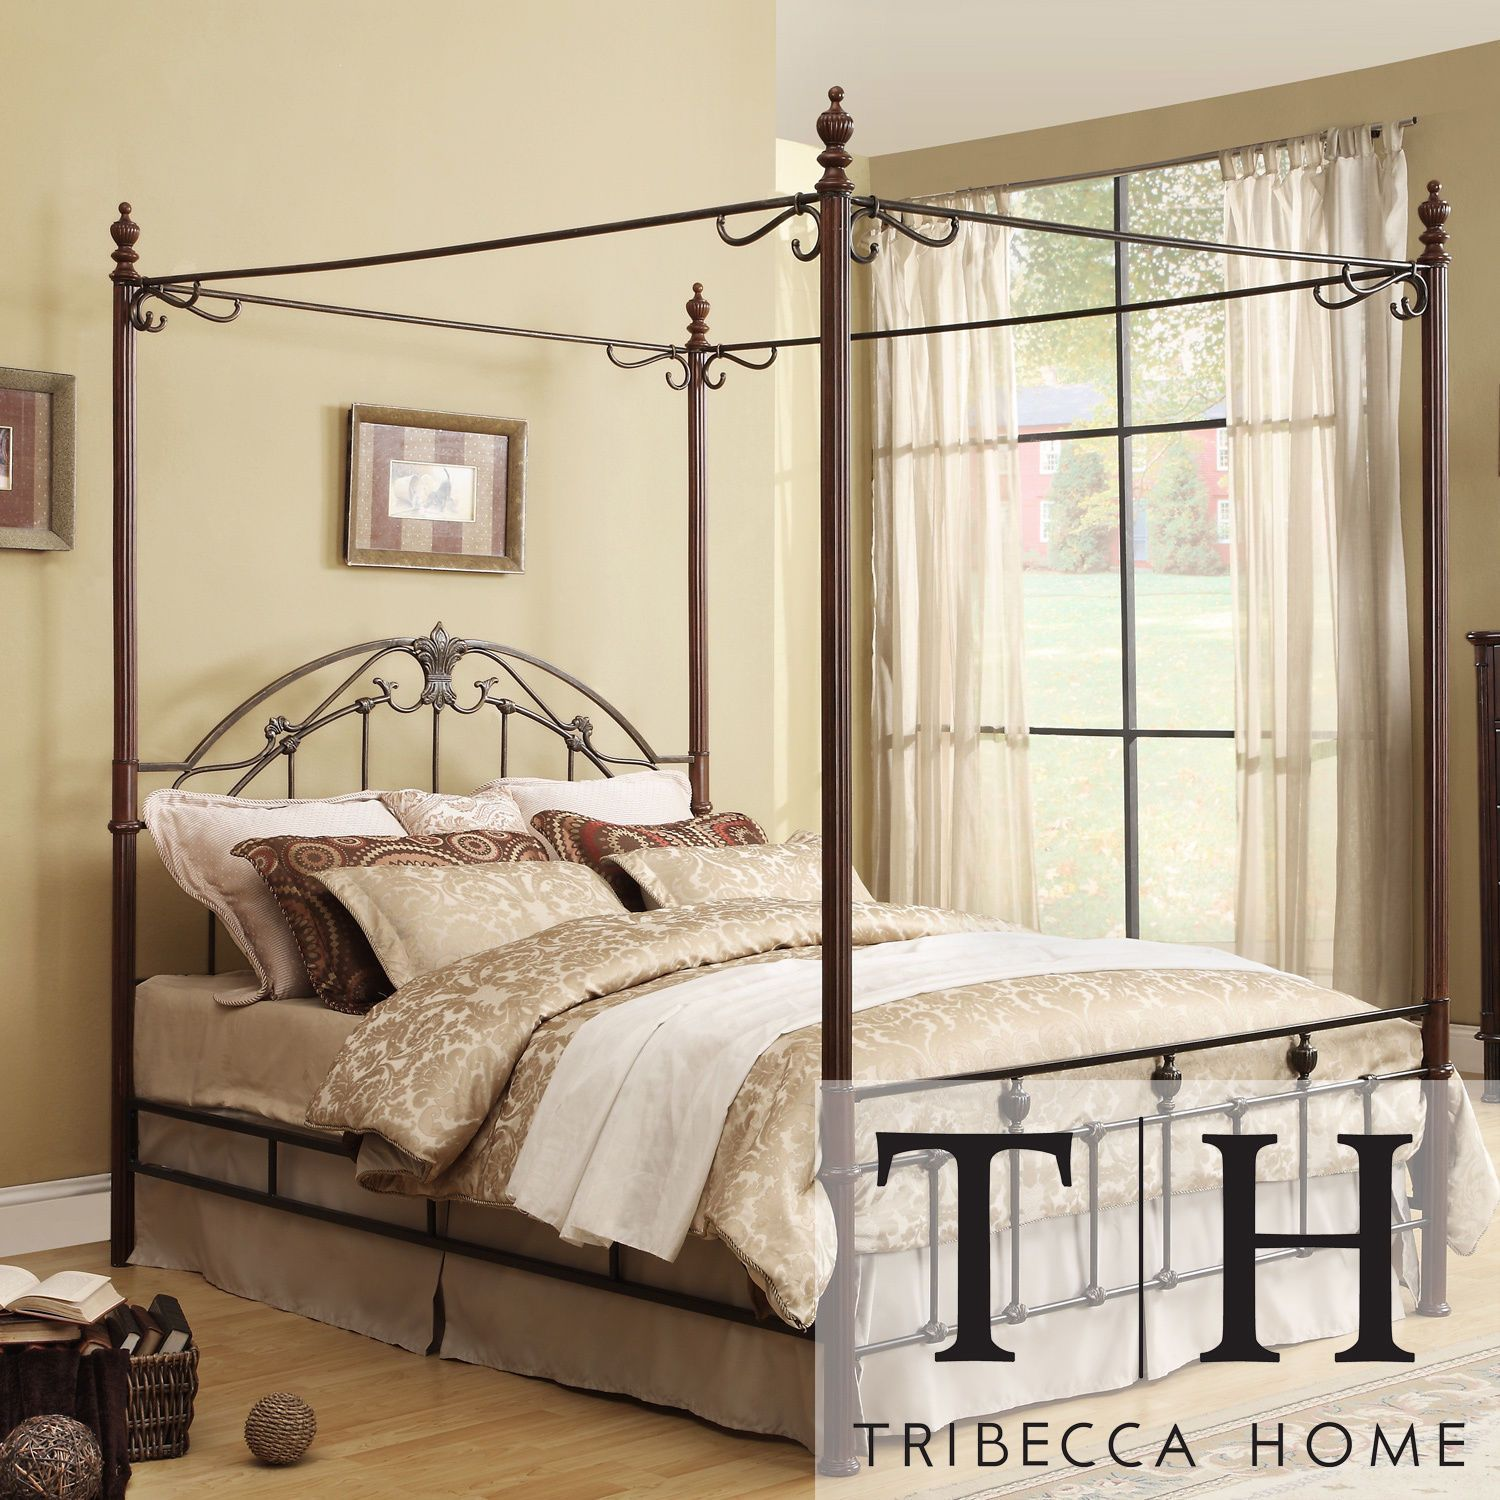 Scroll Bronze Iron Canopy Wood King Size Bed Modern Traditional Platform Home Metal Canopy Bed King Size Canopy Bed Queen Size Canopy Bed